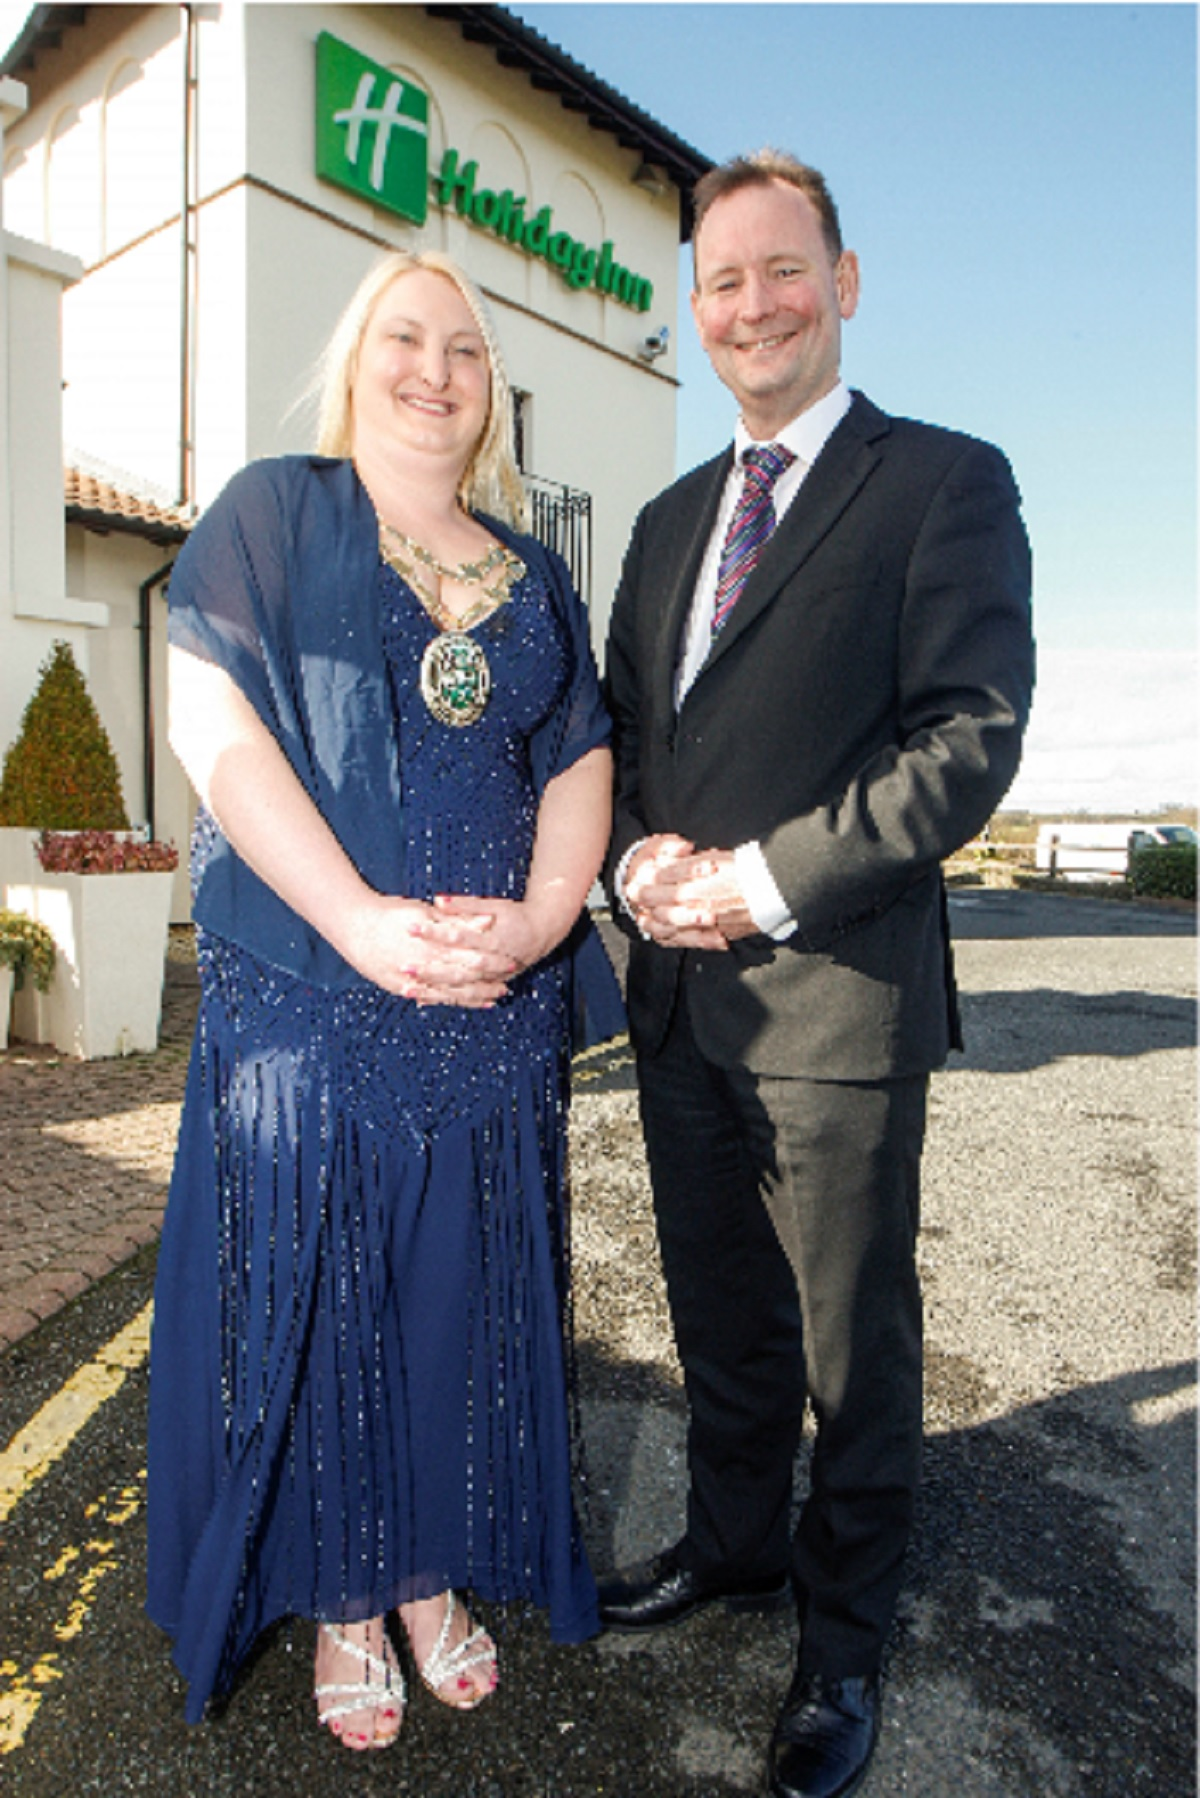 Bromsgrove District Council's civic head Councillor Helen Jones who has organised a charity dinner, being held at Bromsgrove's Holiday Inn. Pictured with manager Alan Northern.   Buy this photo BCR111402